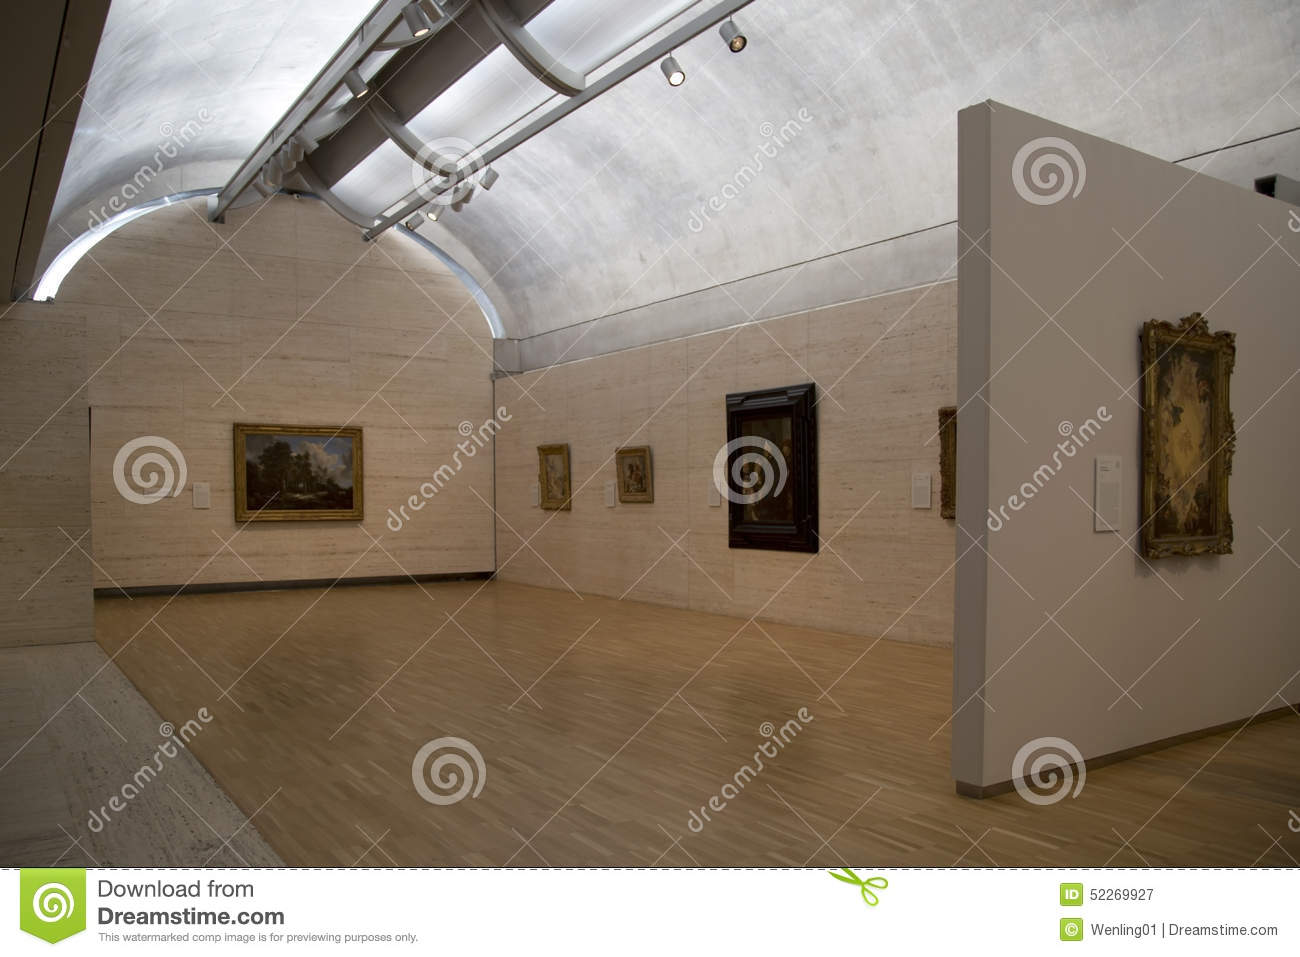 Kimbell museum i Fort Worth